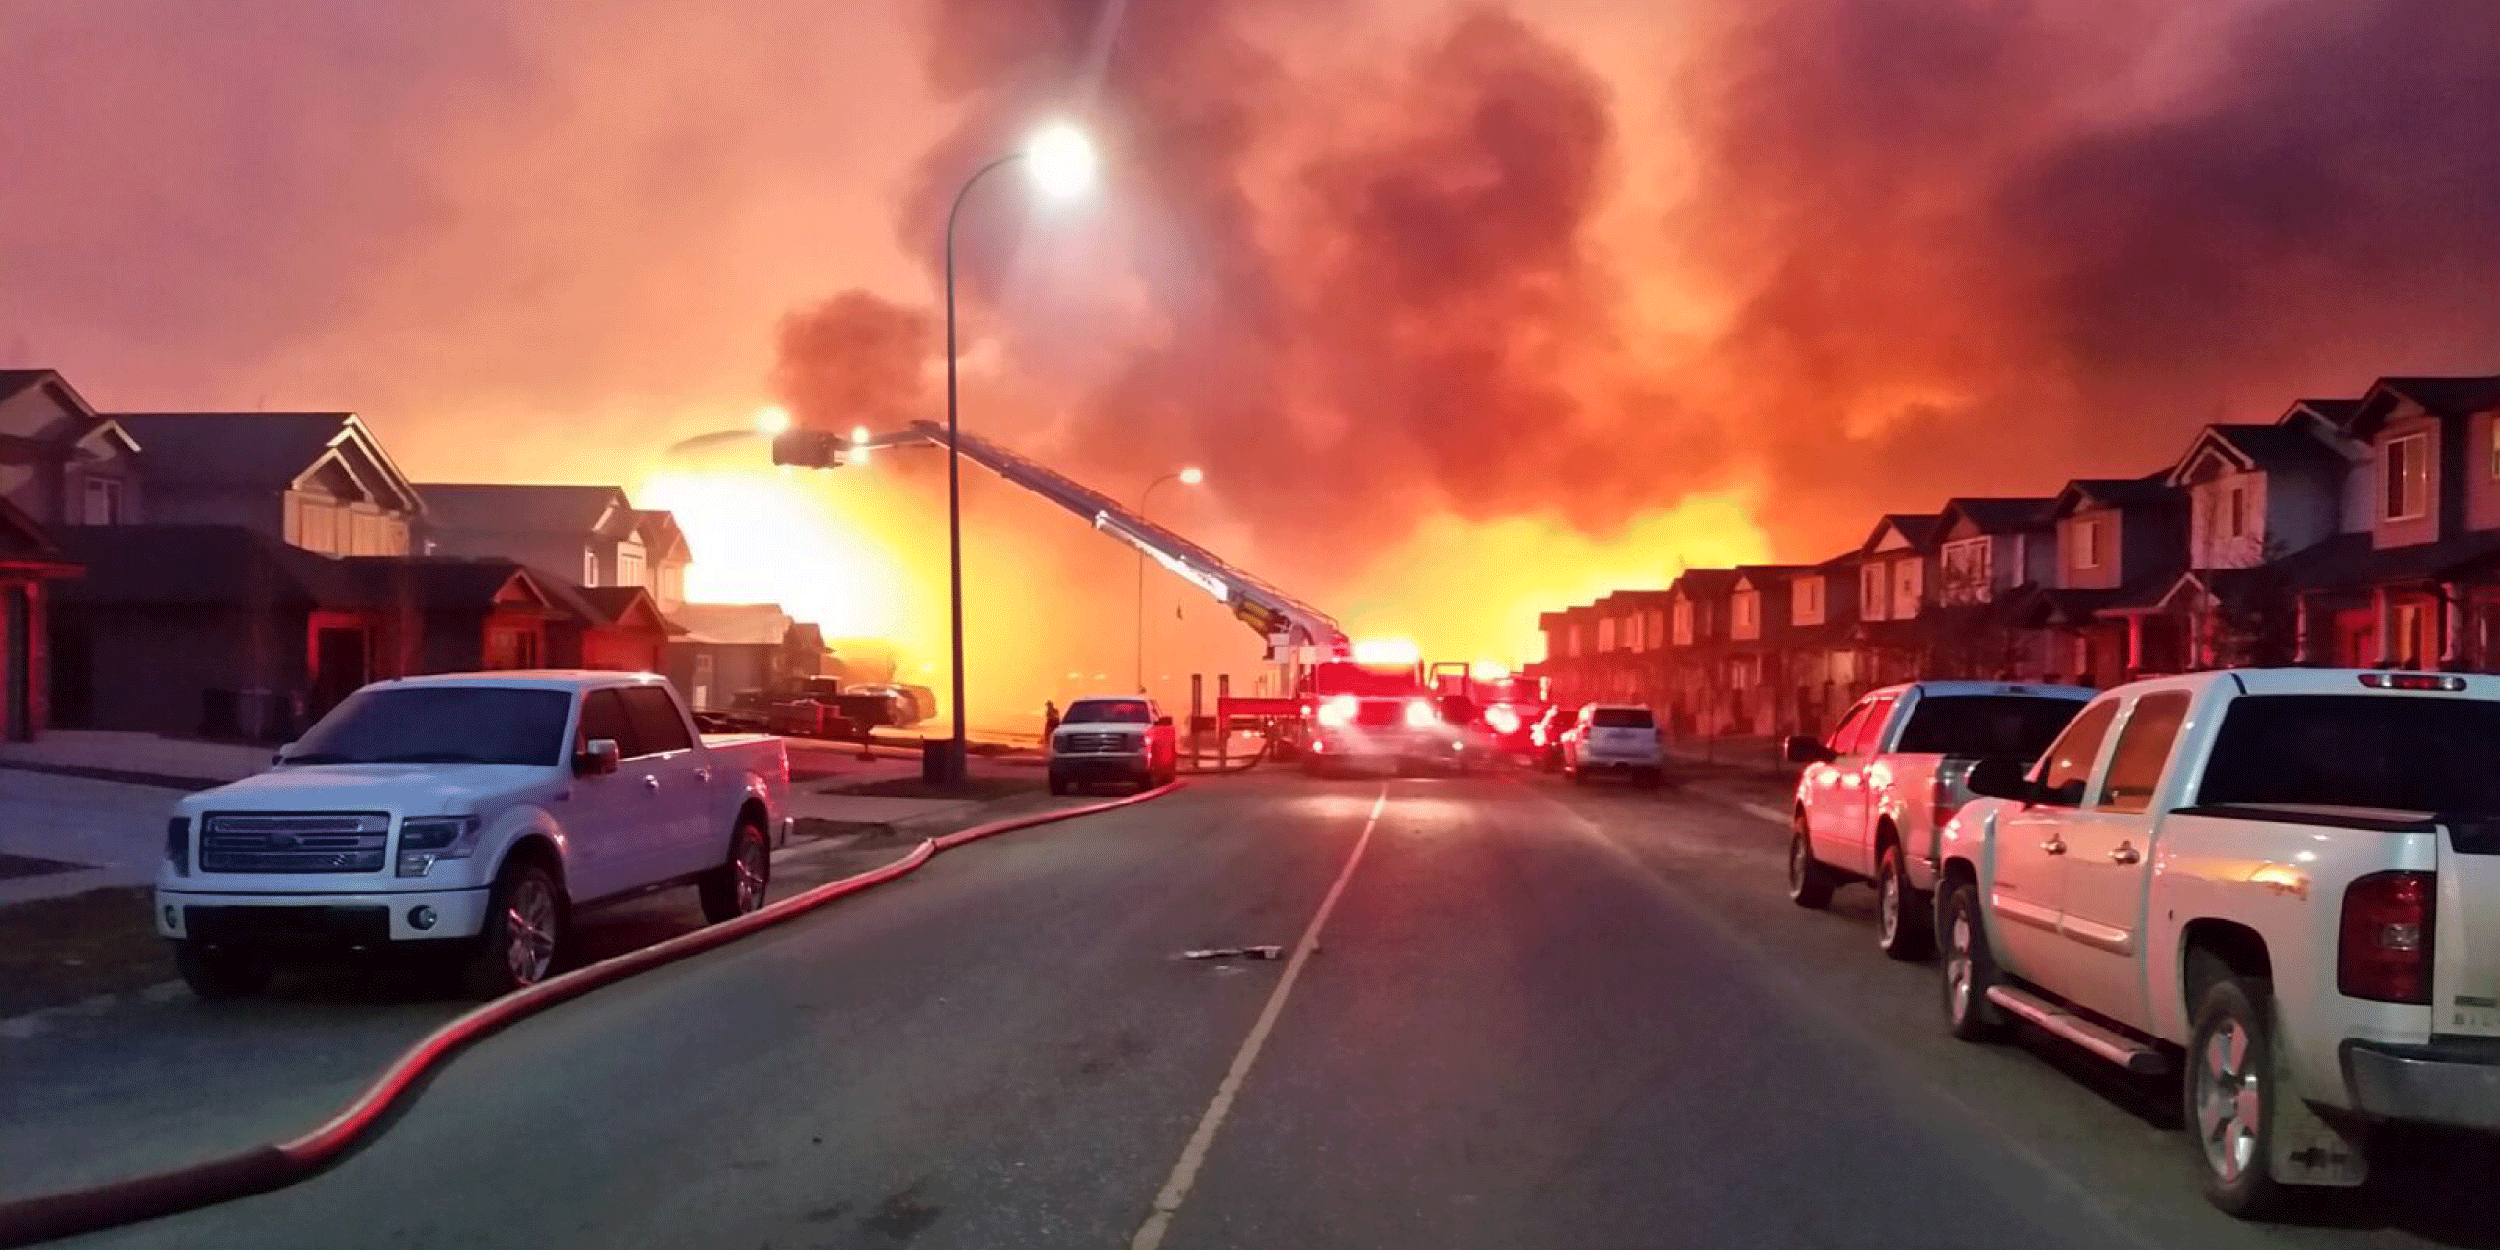 On May 1, 2016, a  wildfire  began southwest of  Fort McMurray ,  Alberta ,  Canada . On May 3, it swept through the community, forcing the largest wildfire evacuation in  Alberta's history ,